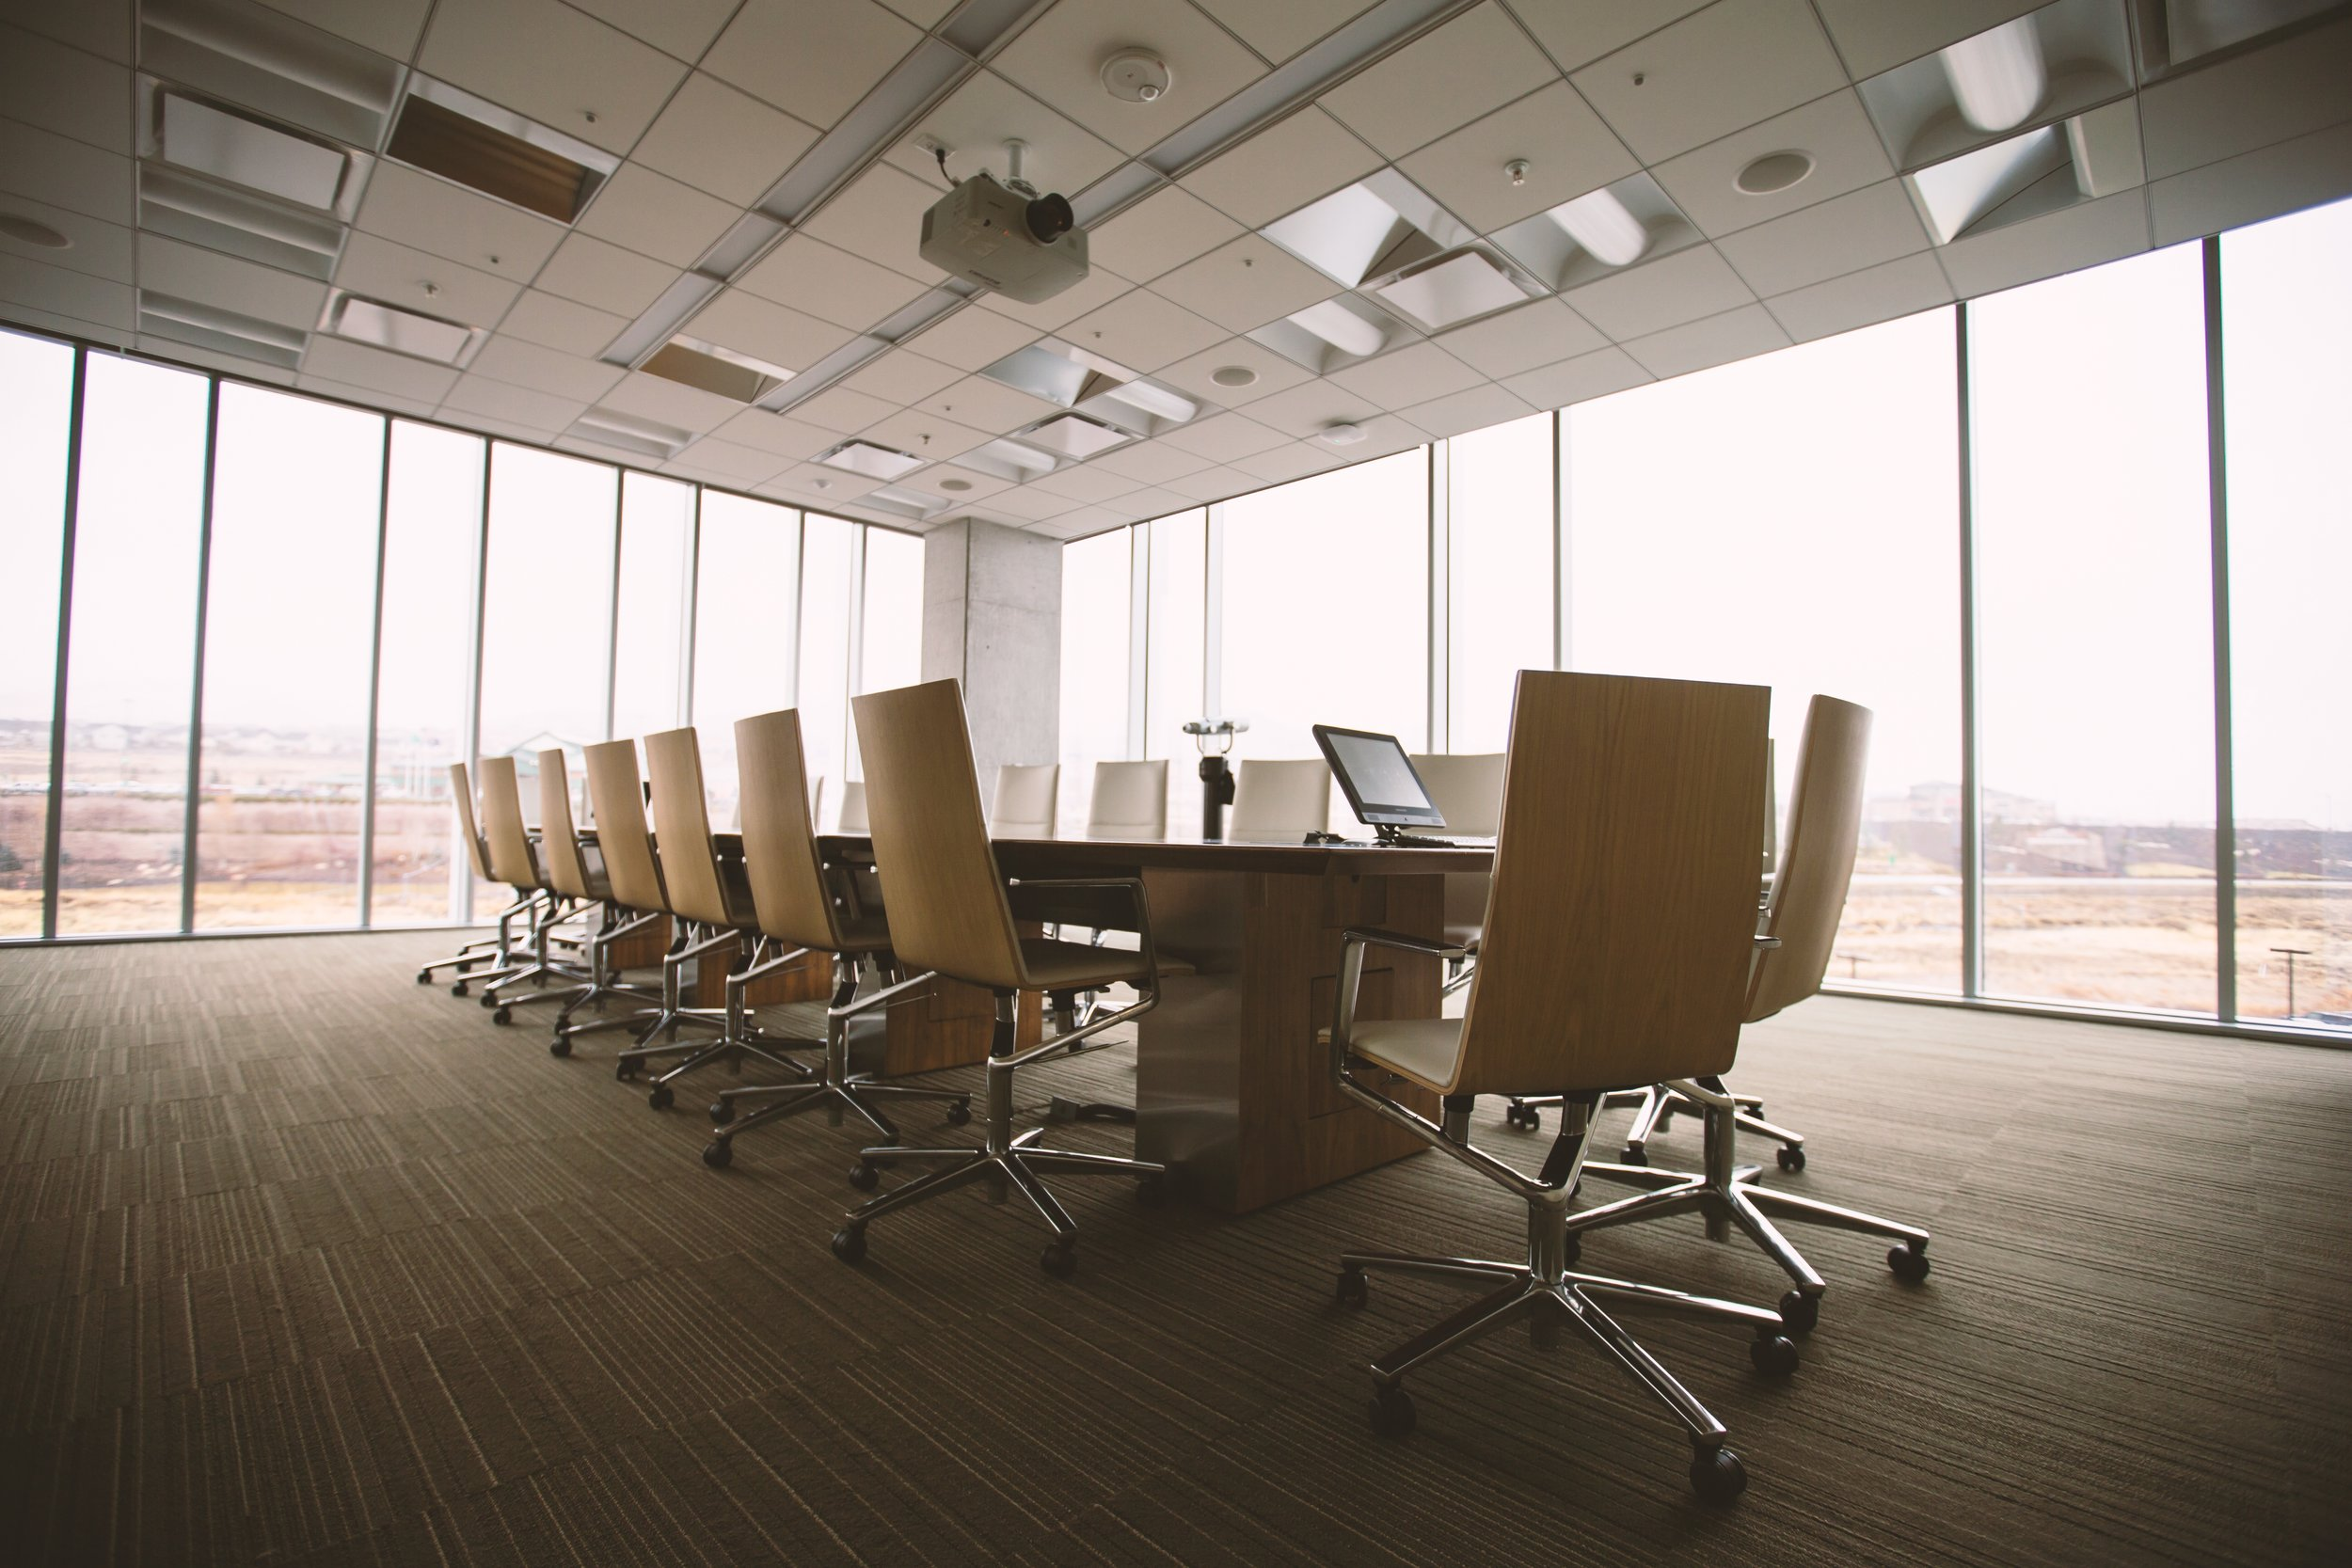 Commercial Services - - Janitorial Services- Night cleaning